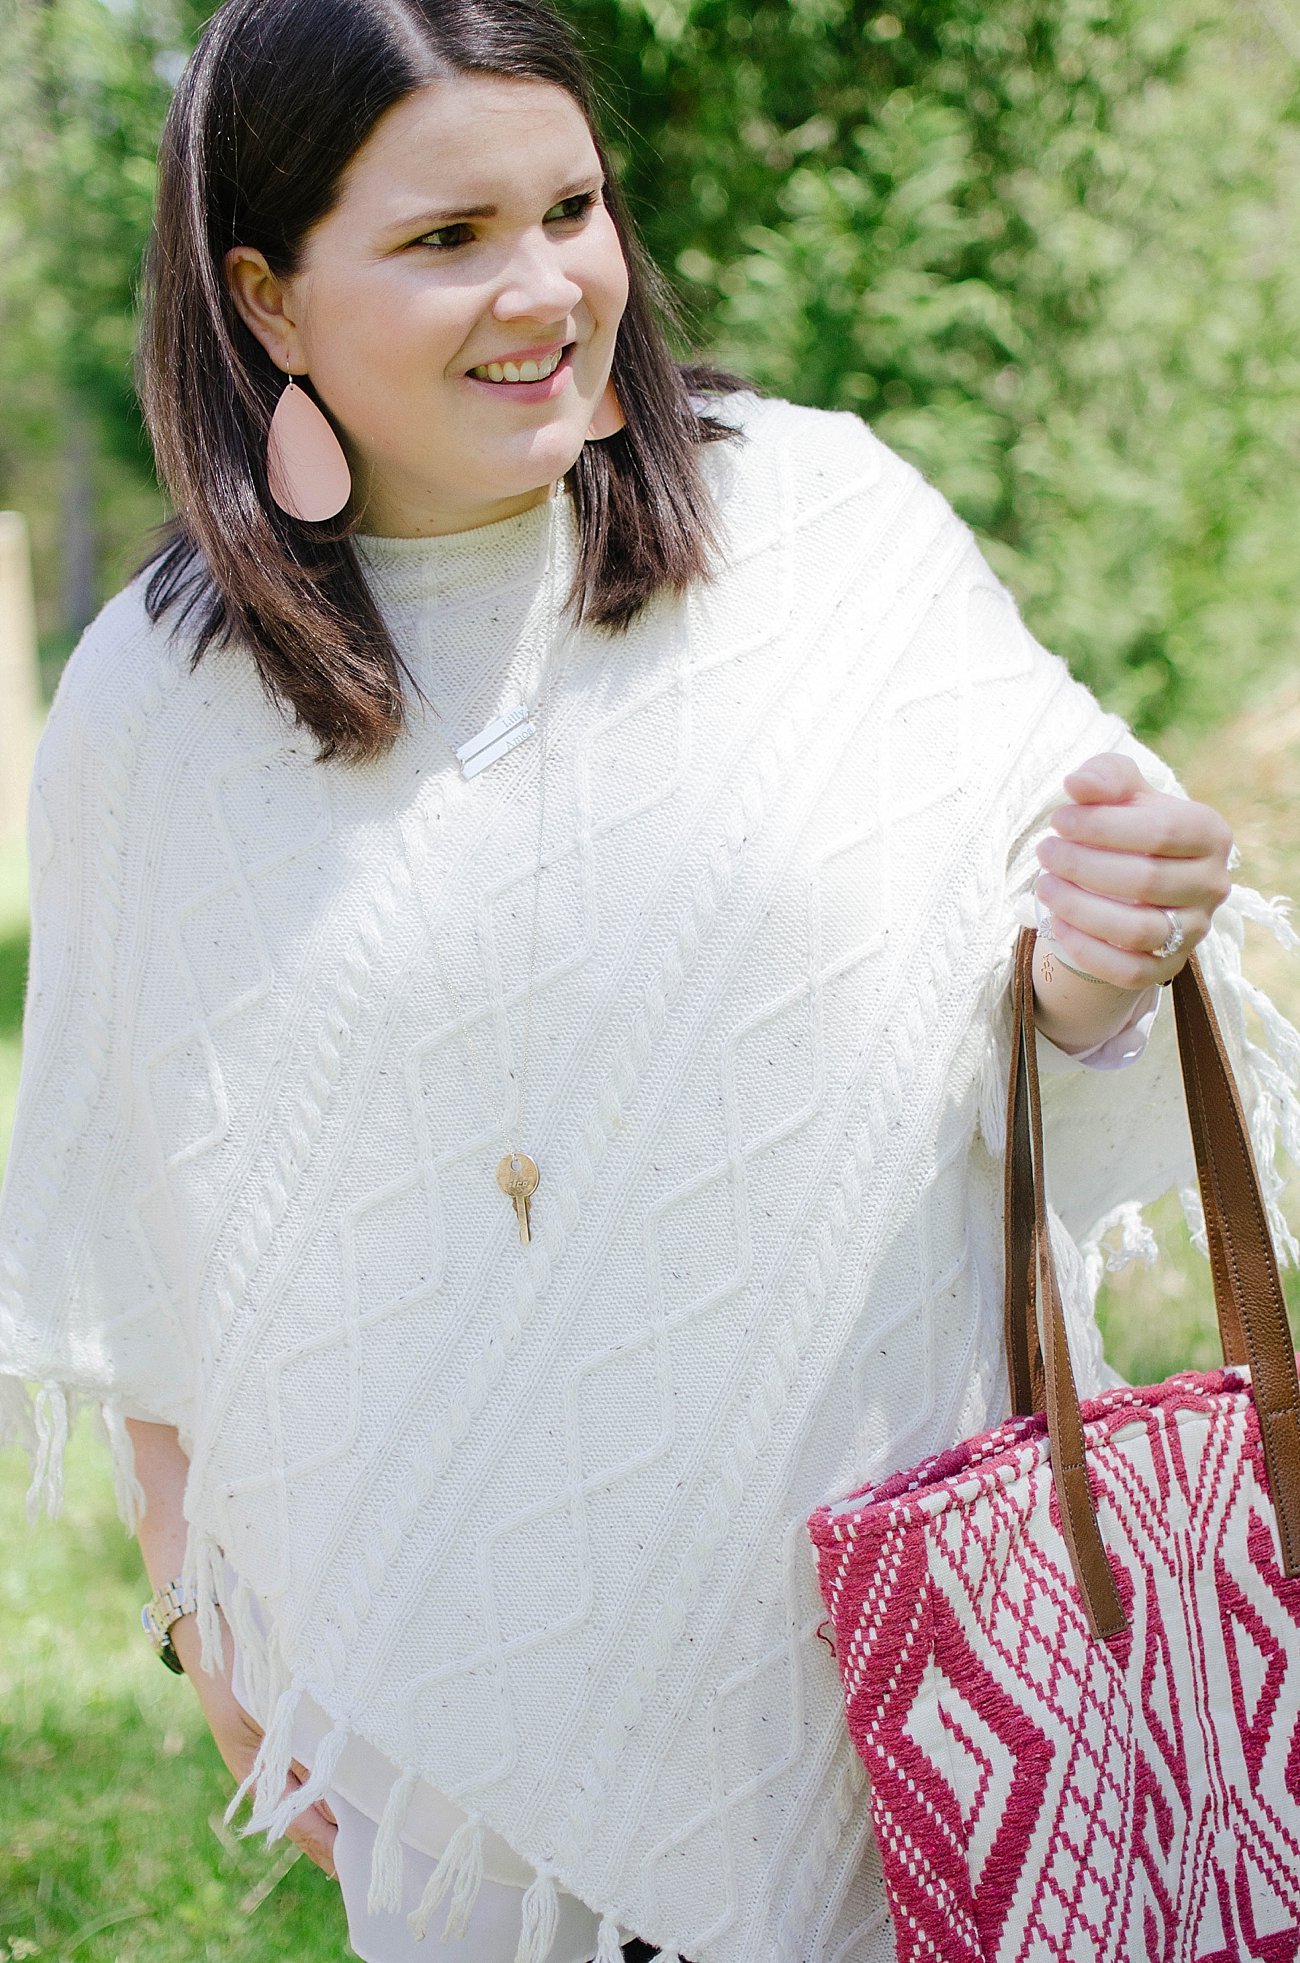 Grace & Lace poncho, Grace & Lace bag, Nickel and Suede earrings, The Root Collective Millie flats, Endless Jewelry bracelets, Wristology Watch | Casual Style - North Carolina Fashion Blogger (2)